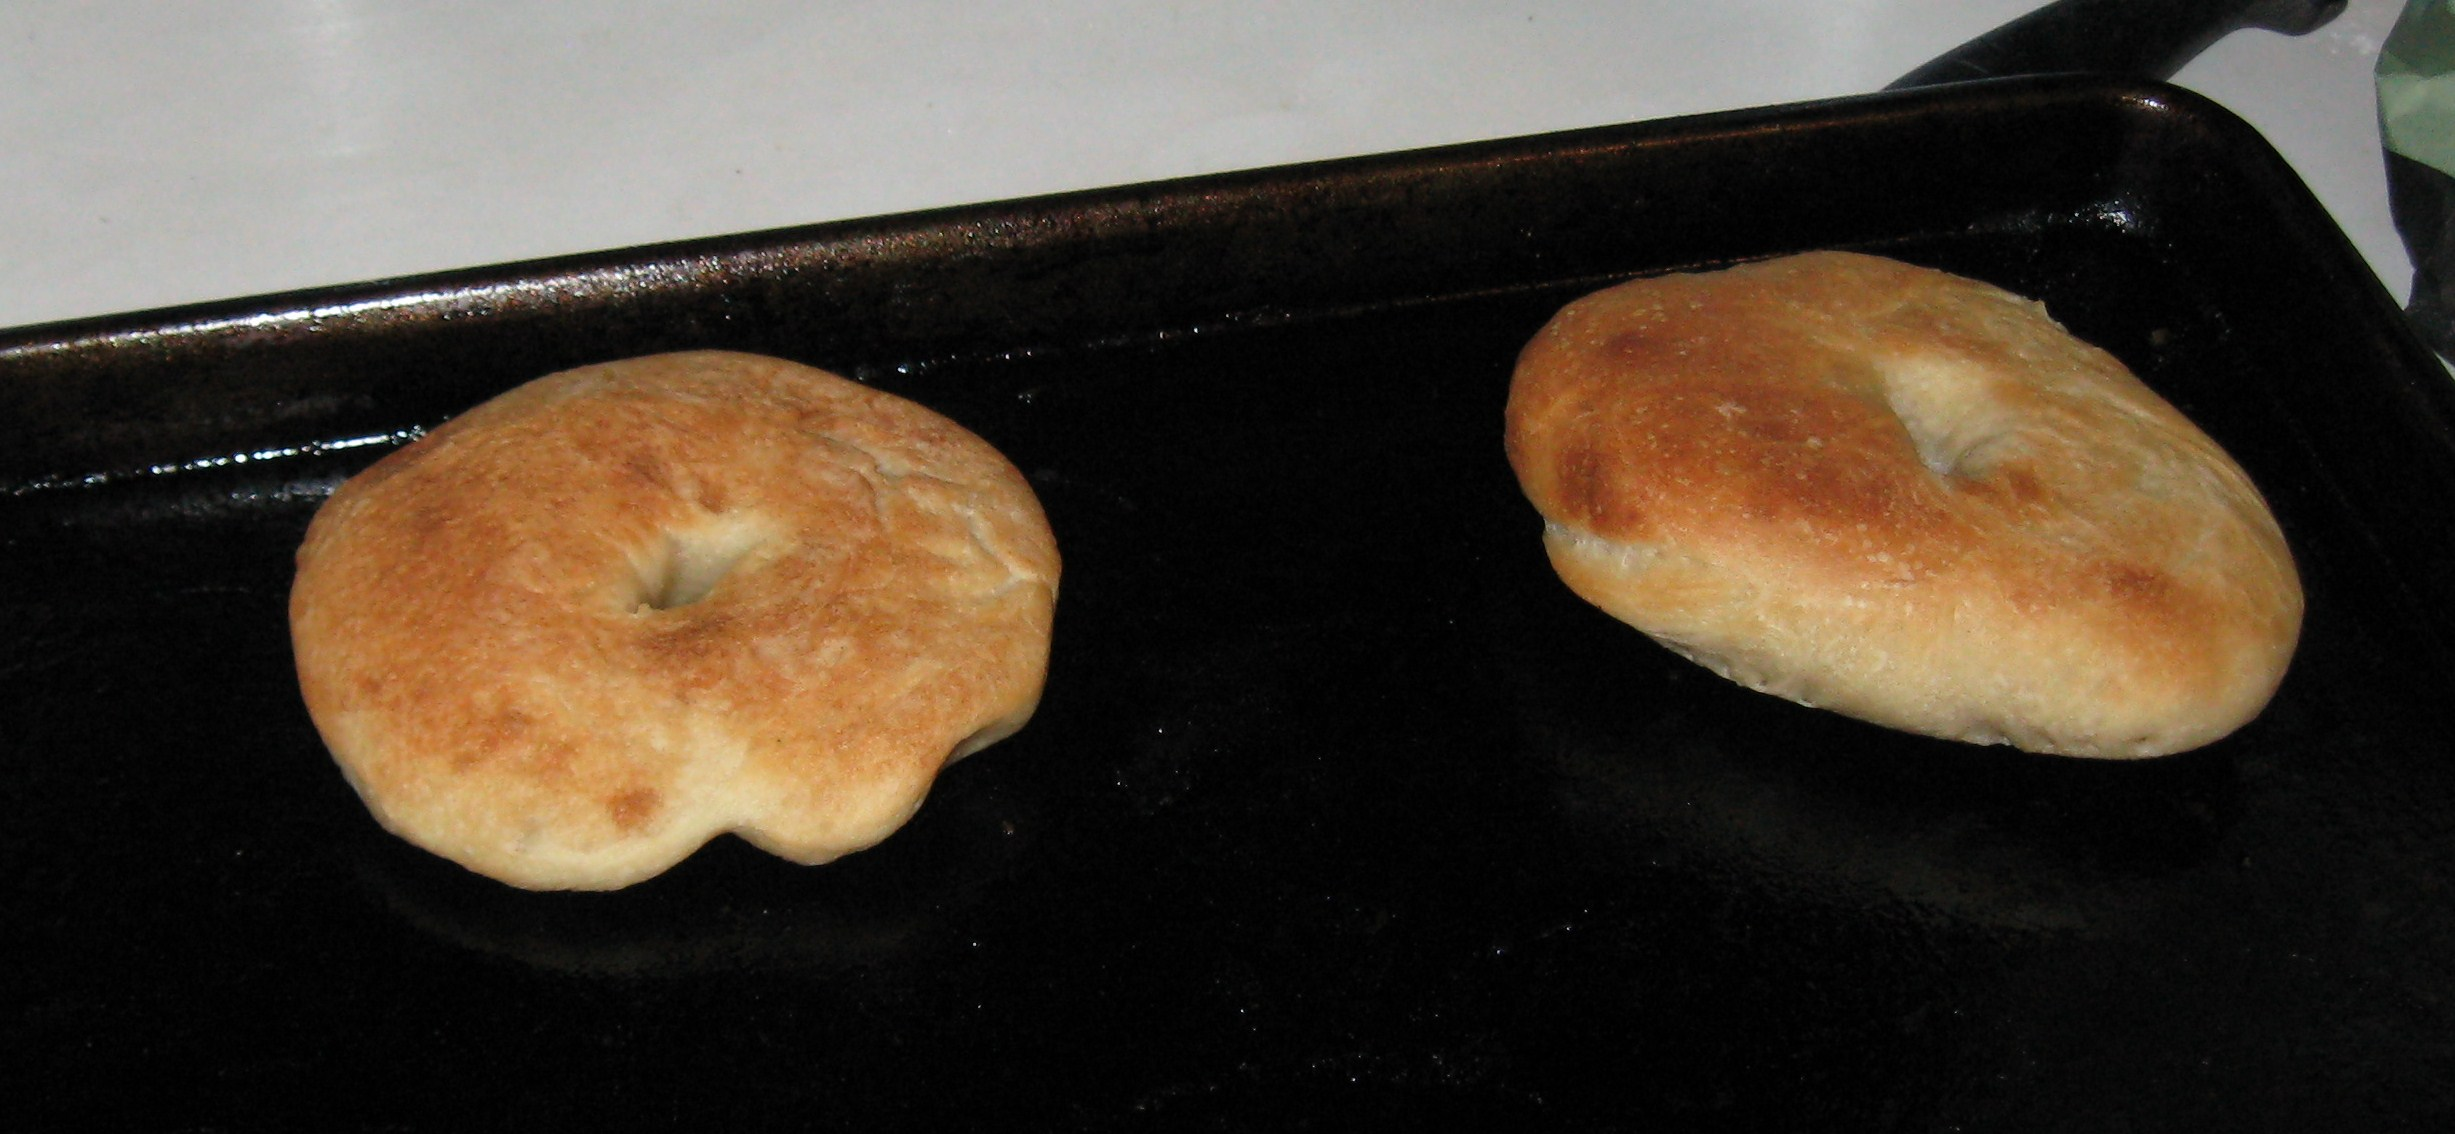 there were two little bagels, sitting on the tray...